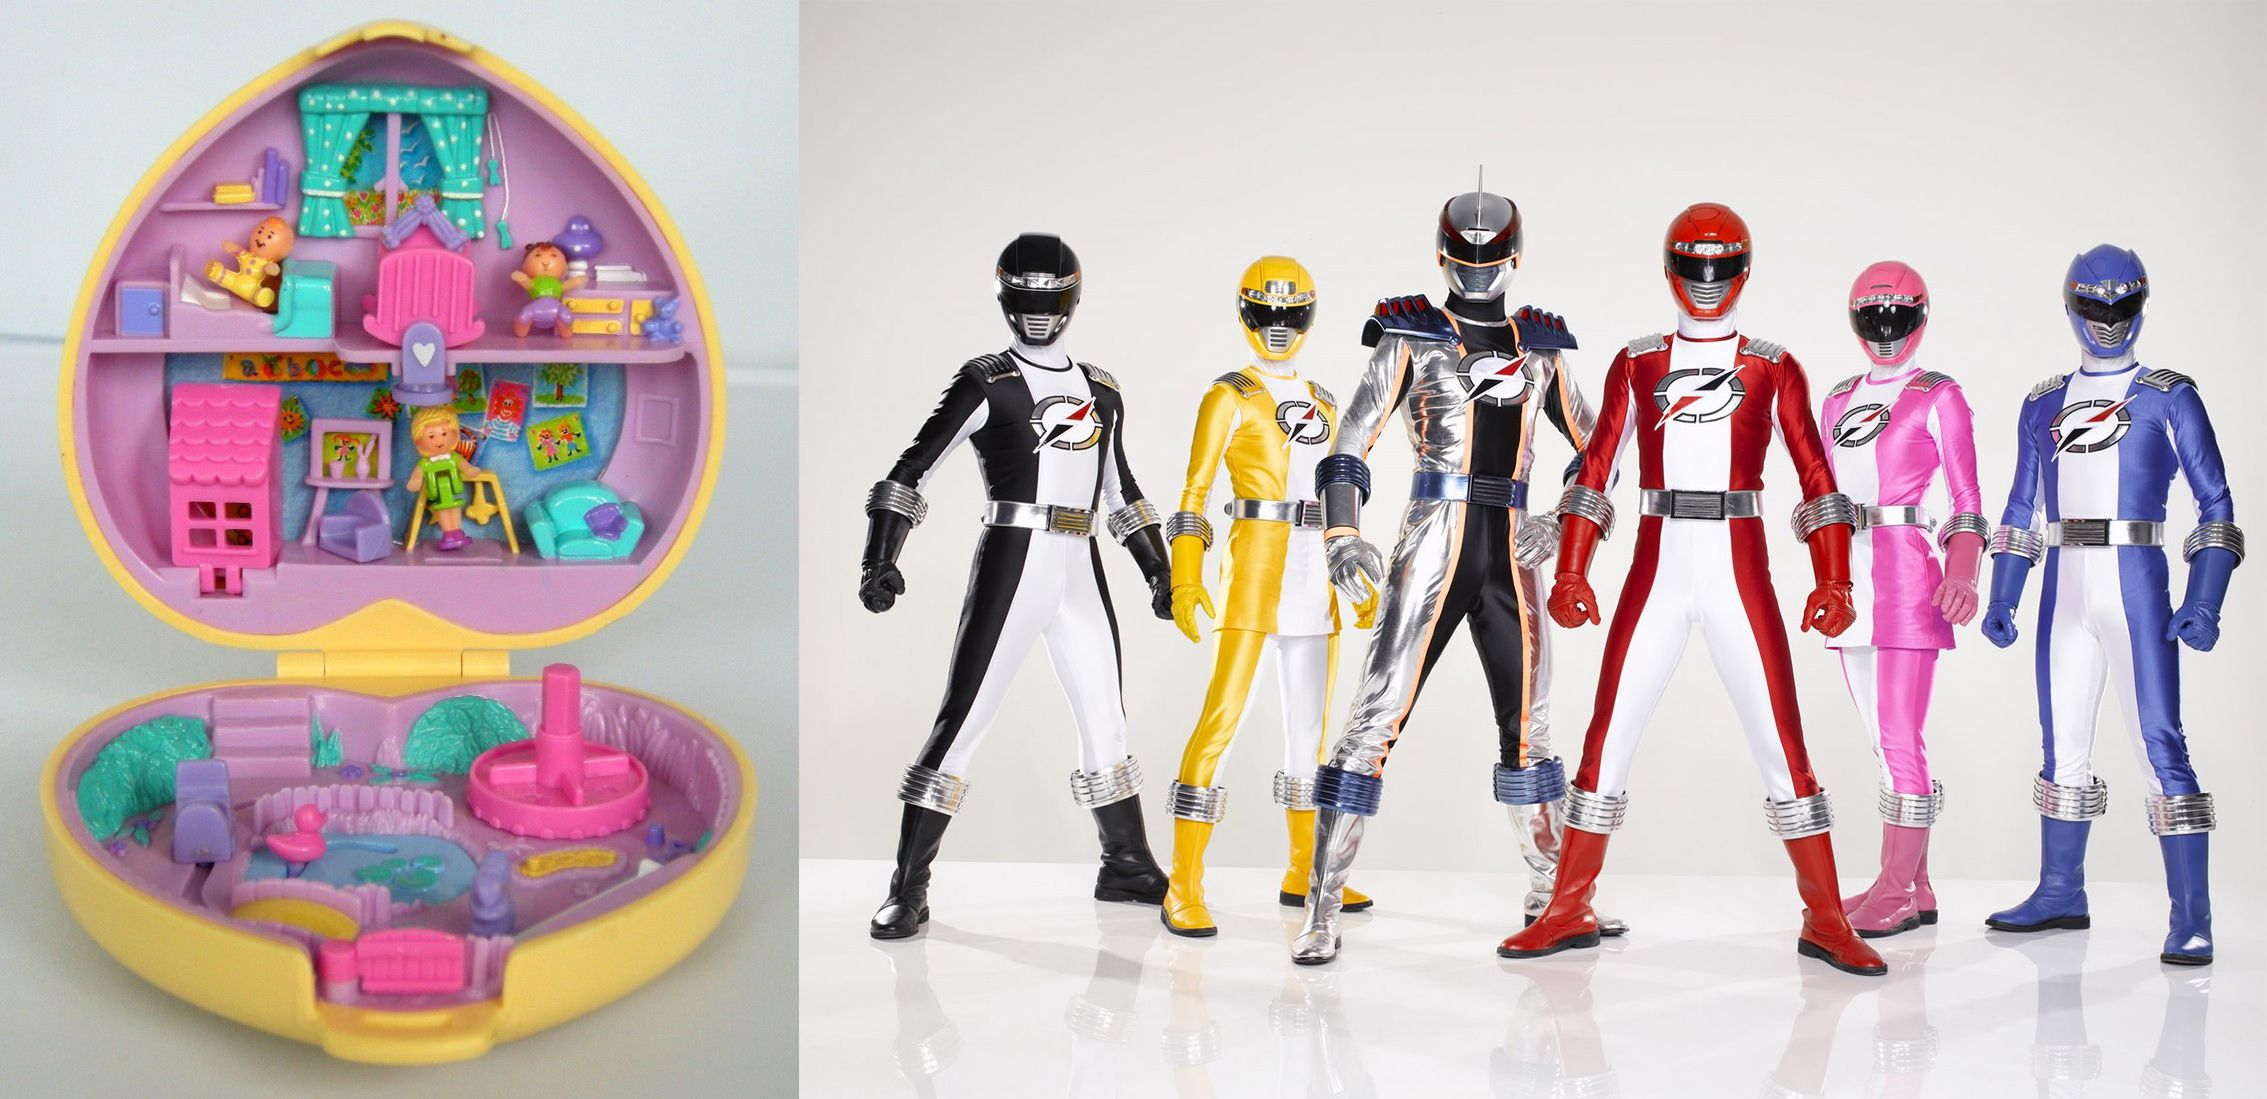 Polly Pocket vs Power Rangers